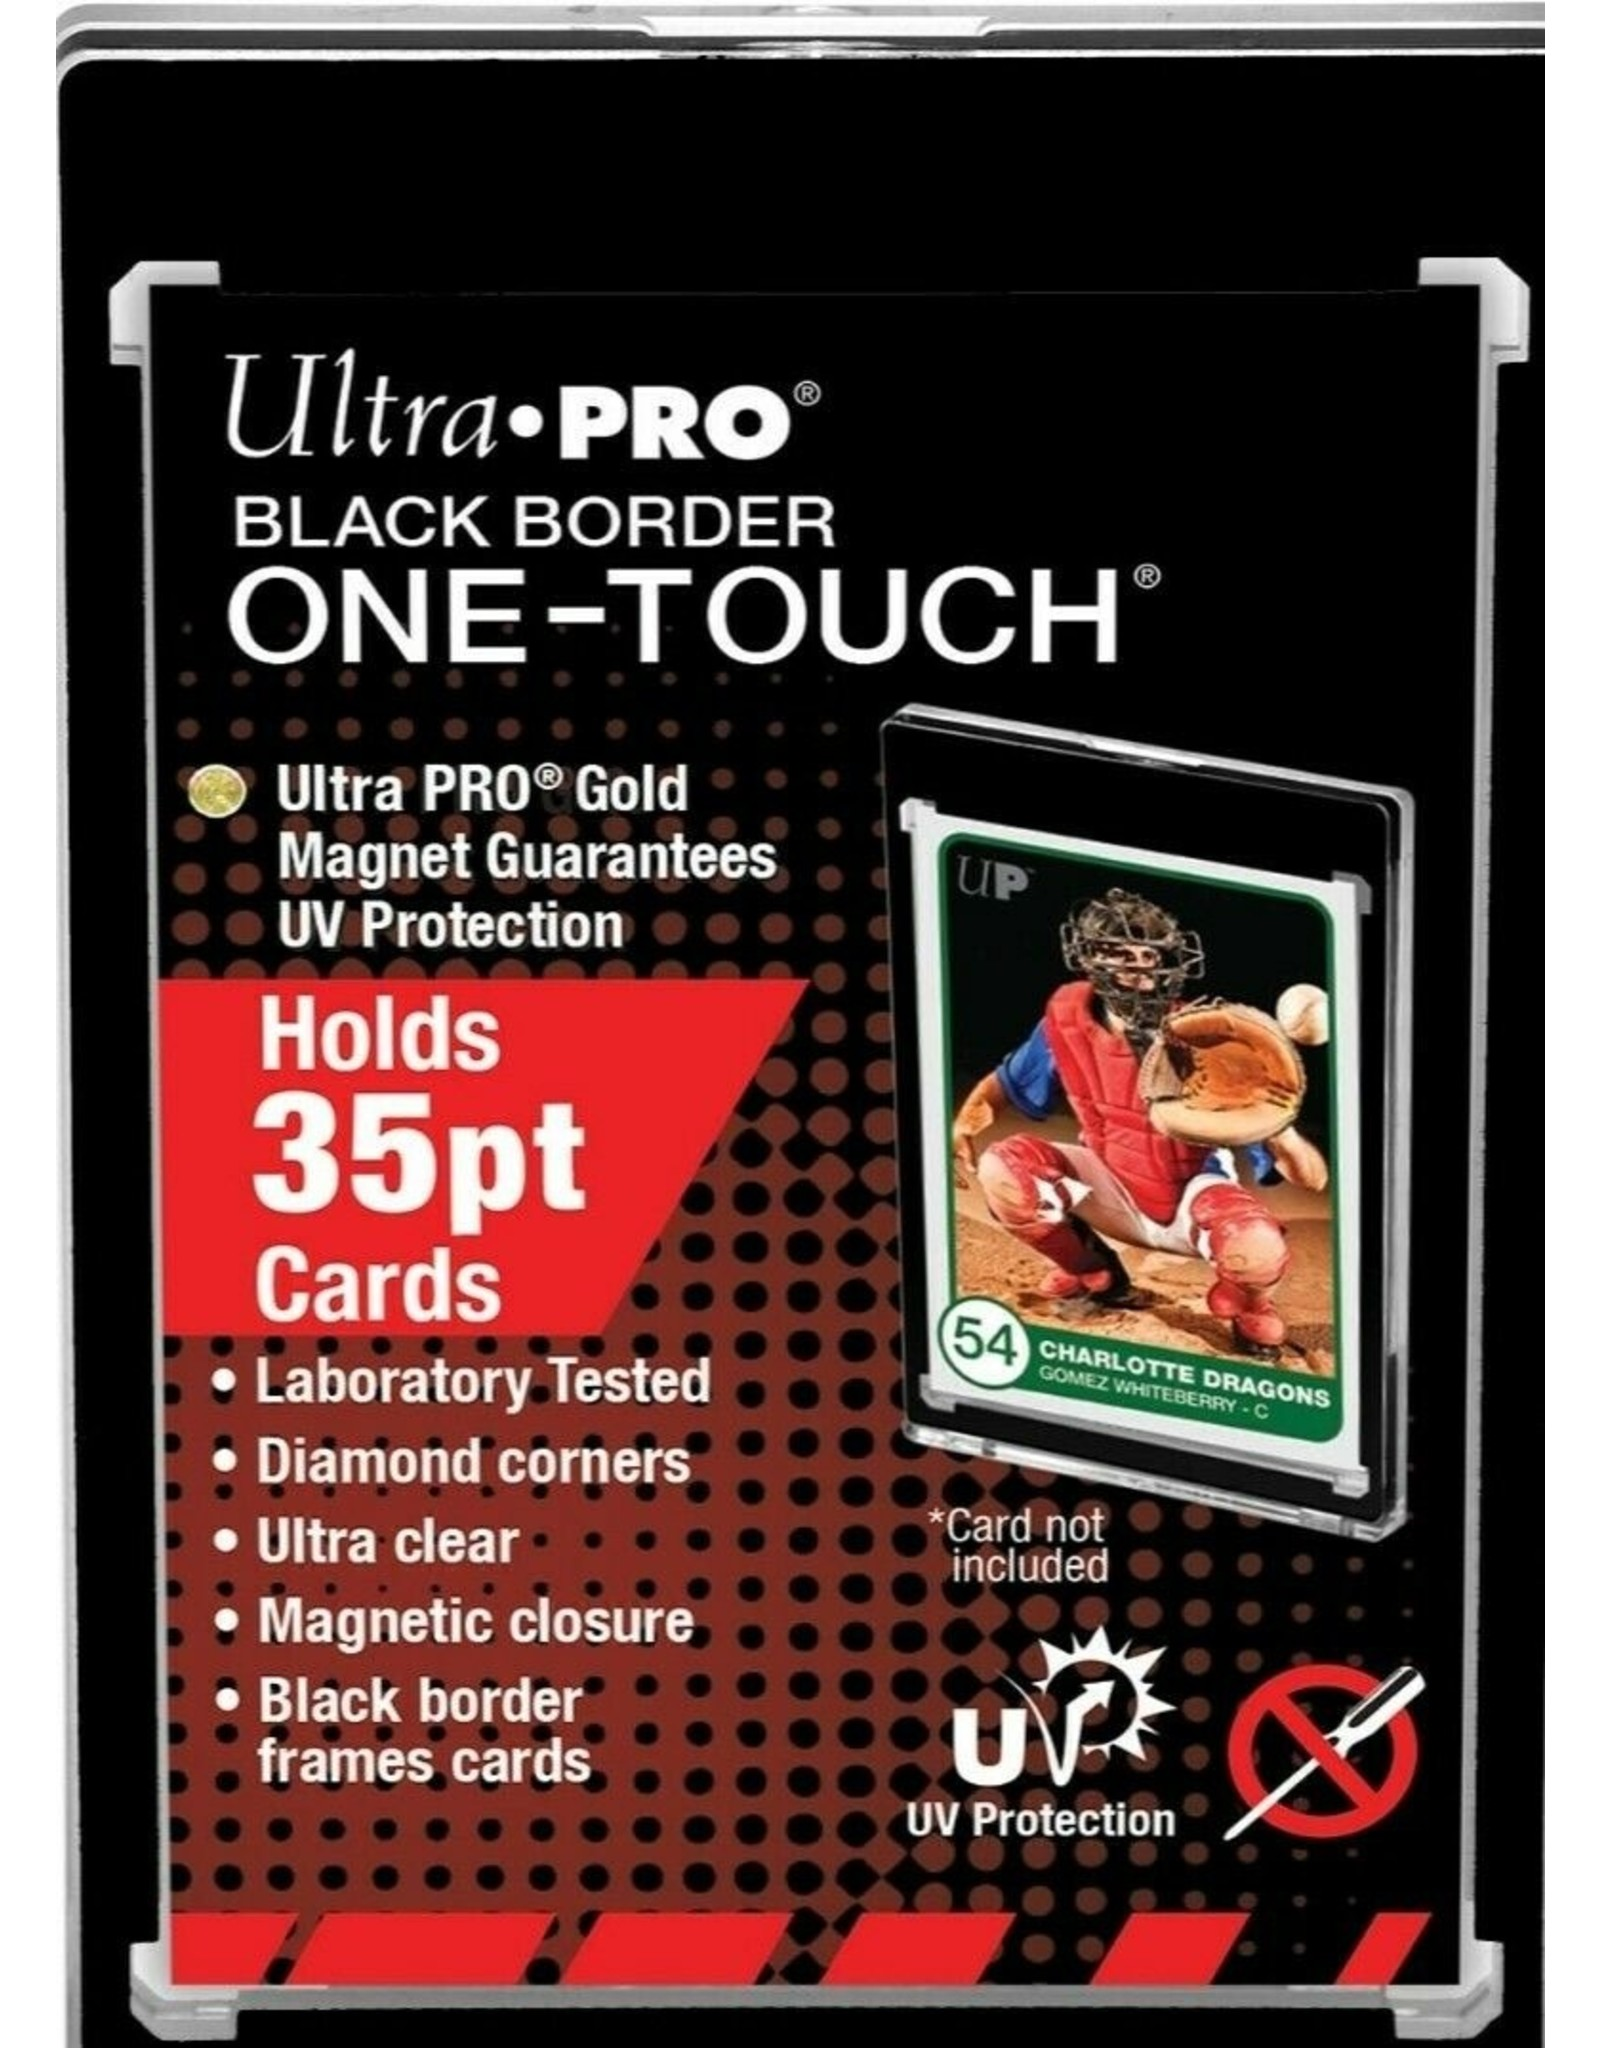 Ultra Pro 35pt Black Border One-Touch